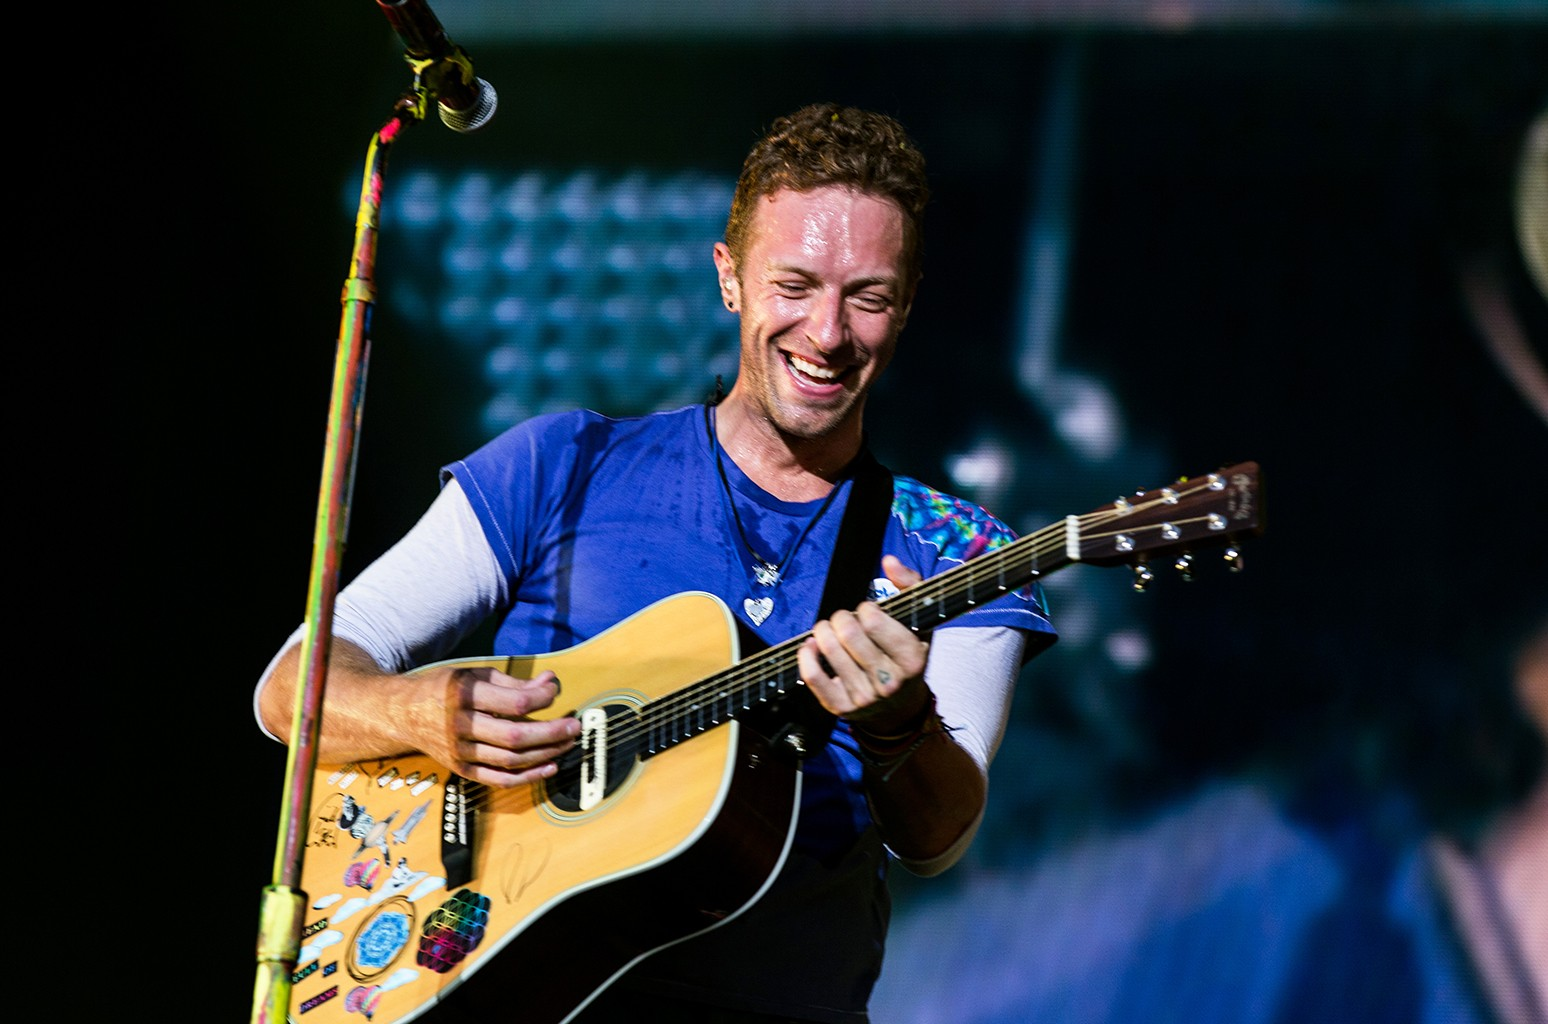 Chris Martin of Coldplay performs in England